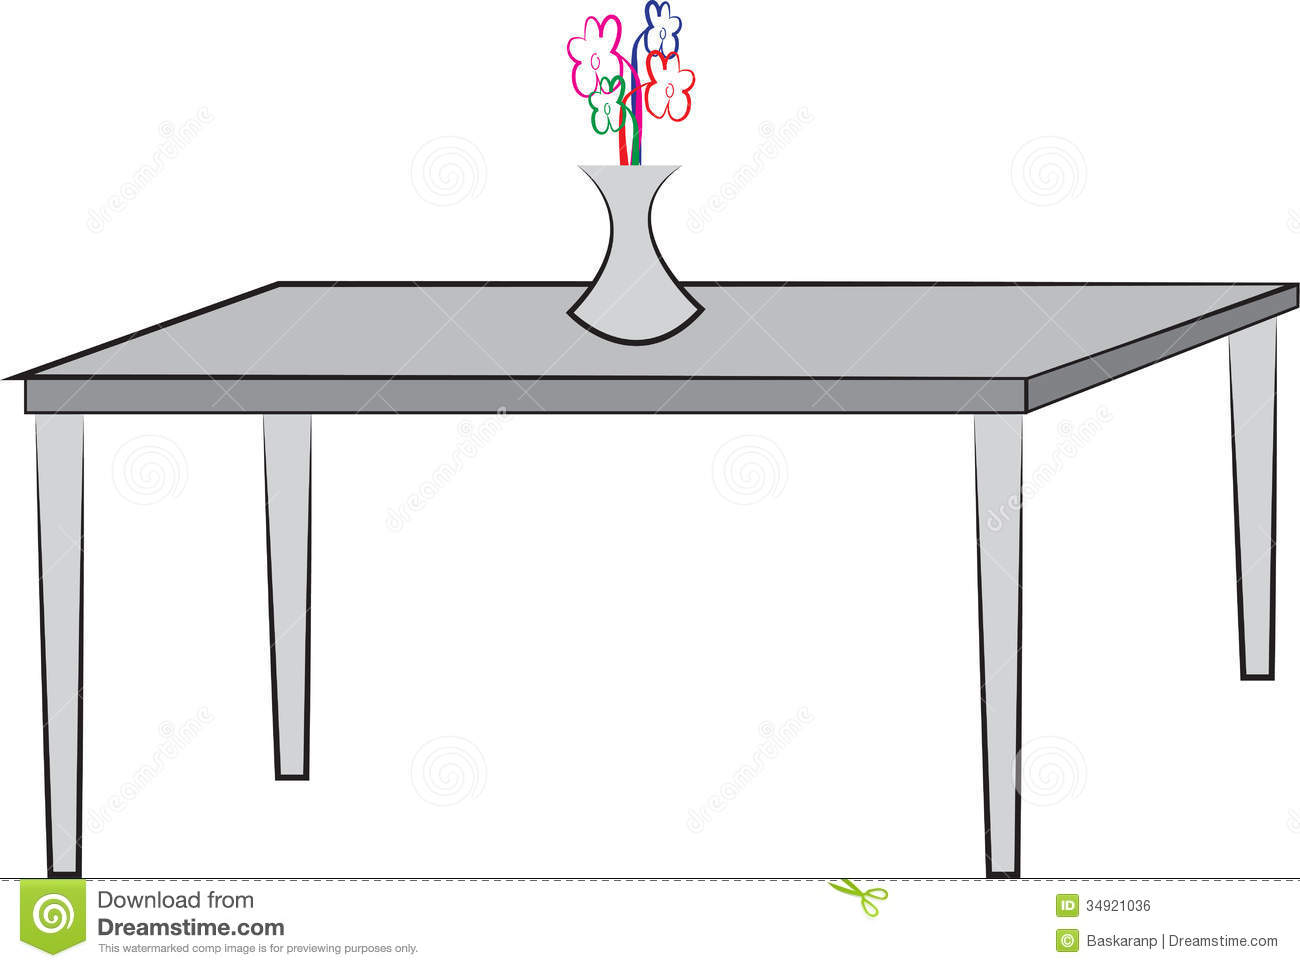 dessin simple de table image libre de droits image 34921036. Black Bedroom Furniture Sets. Home Design Ideas